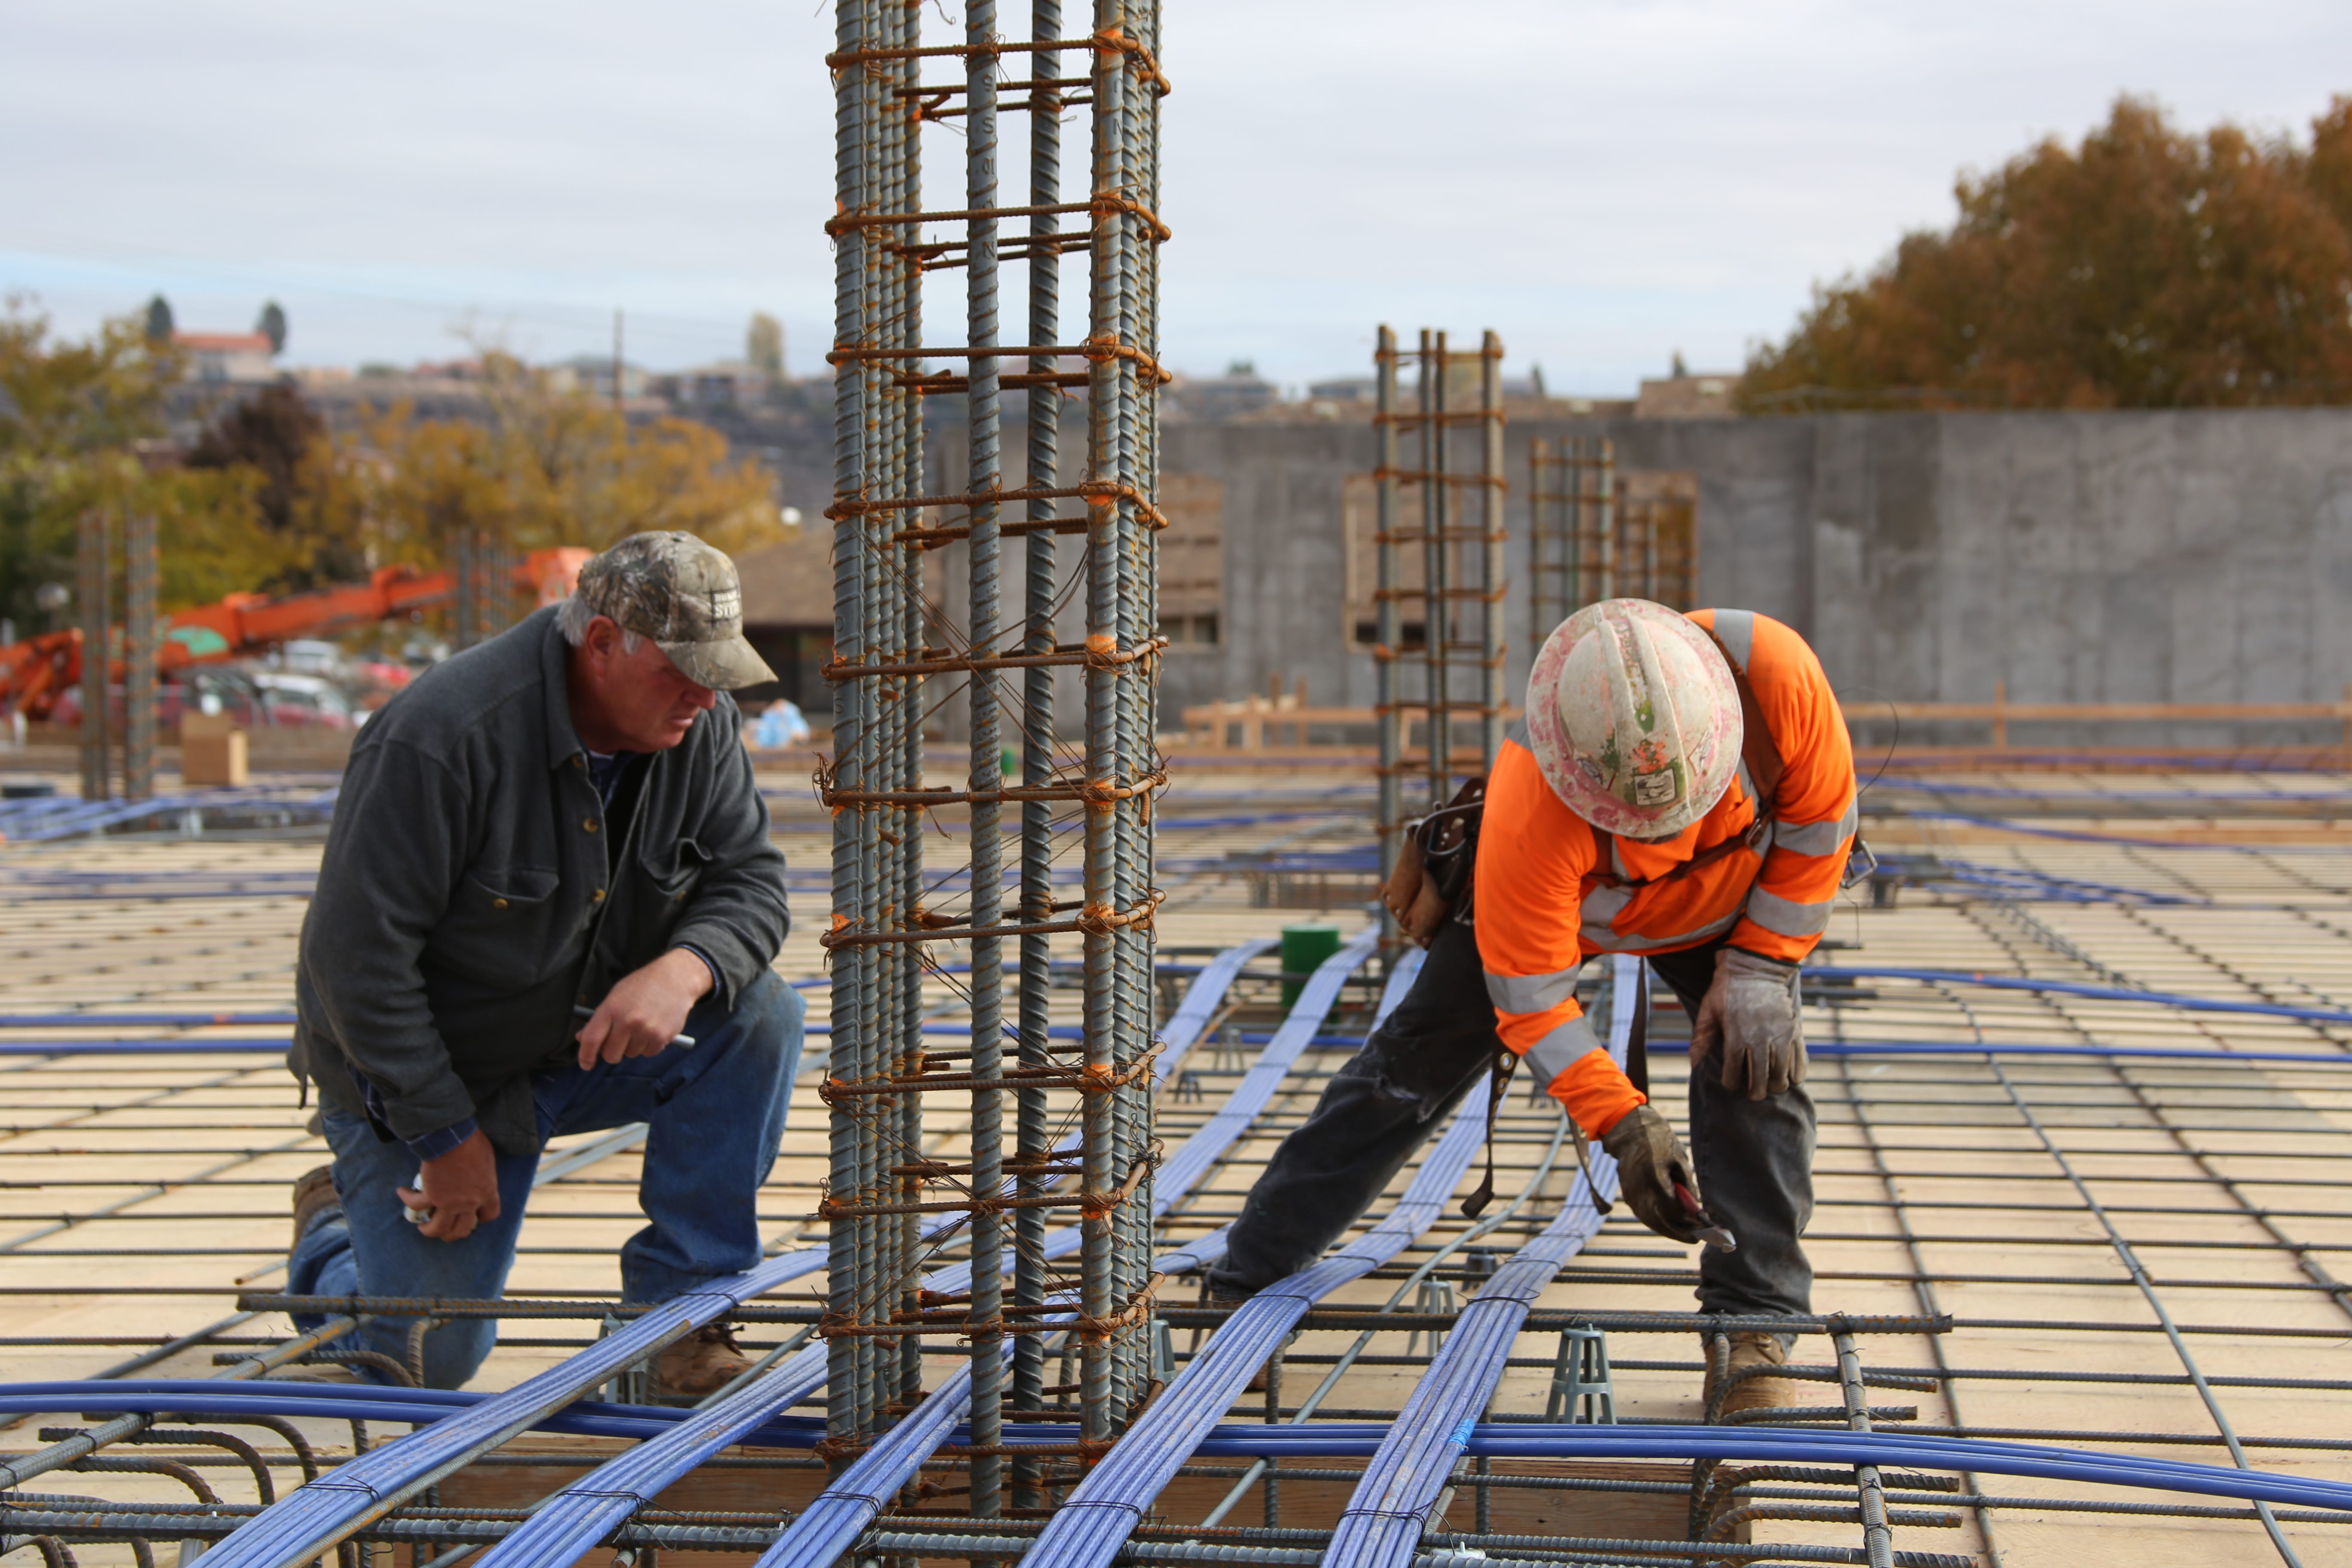 Building Dixie with Dixie: Bonneville Builders rely on local subcontractors during So. Utah building boom